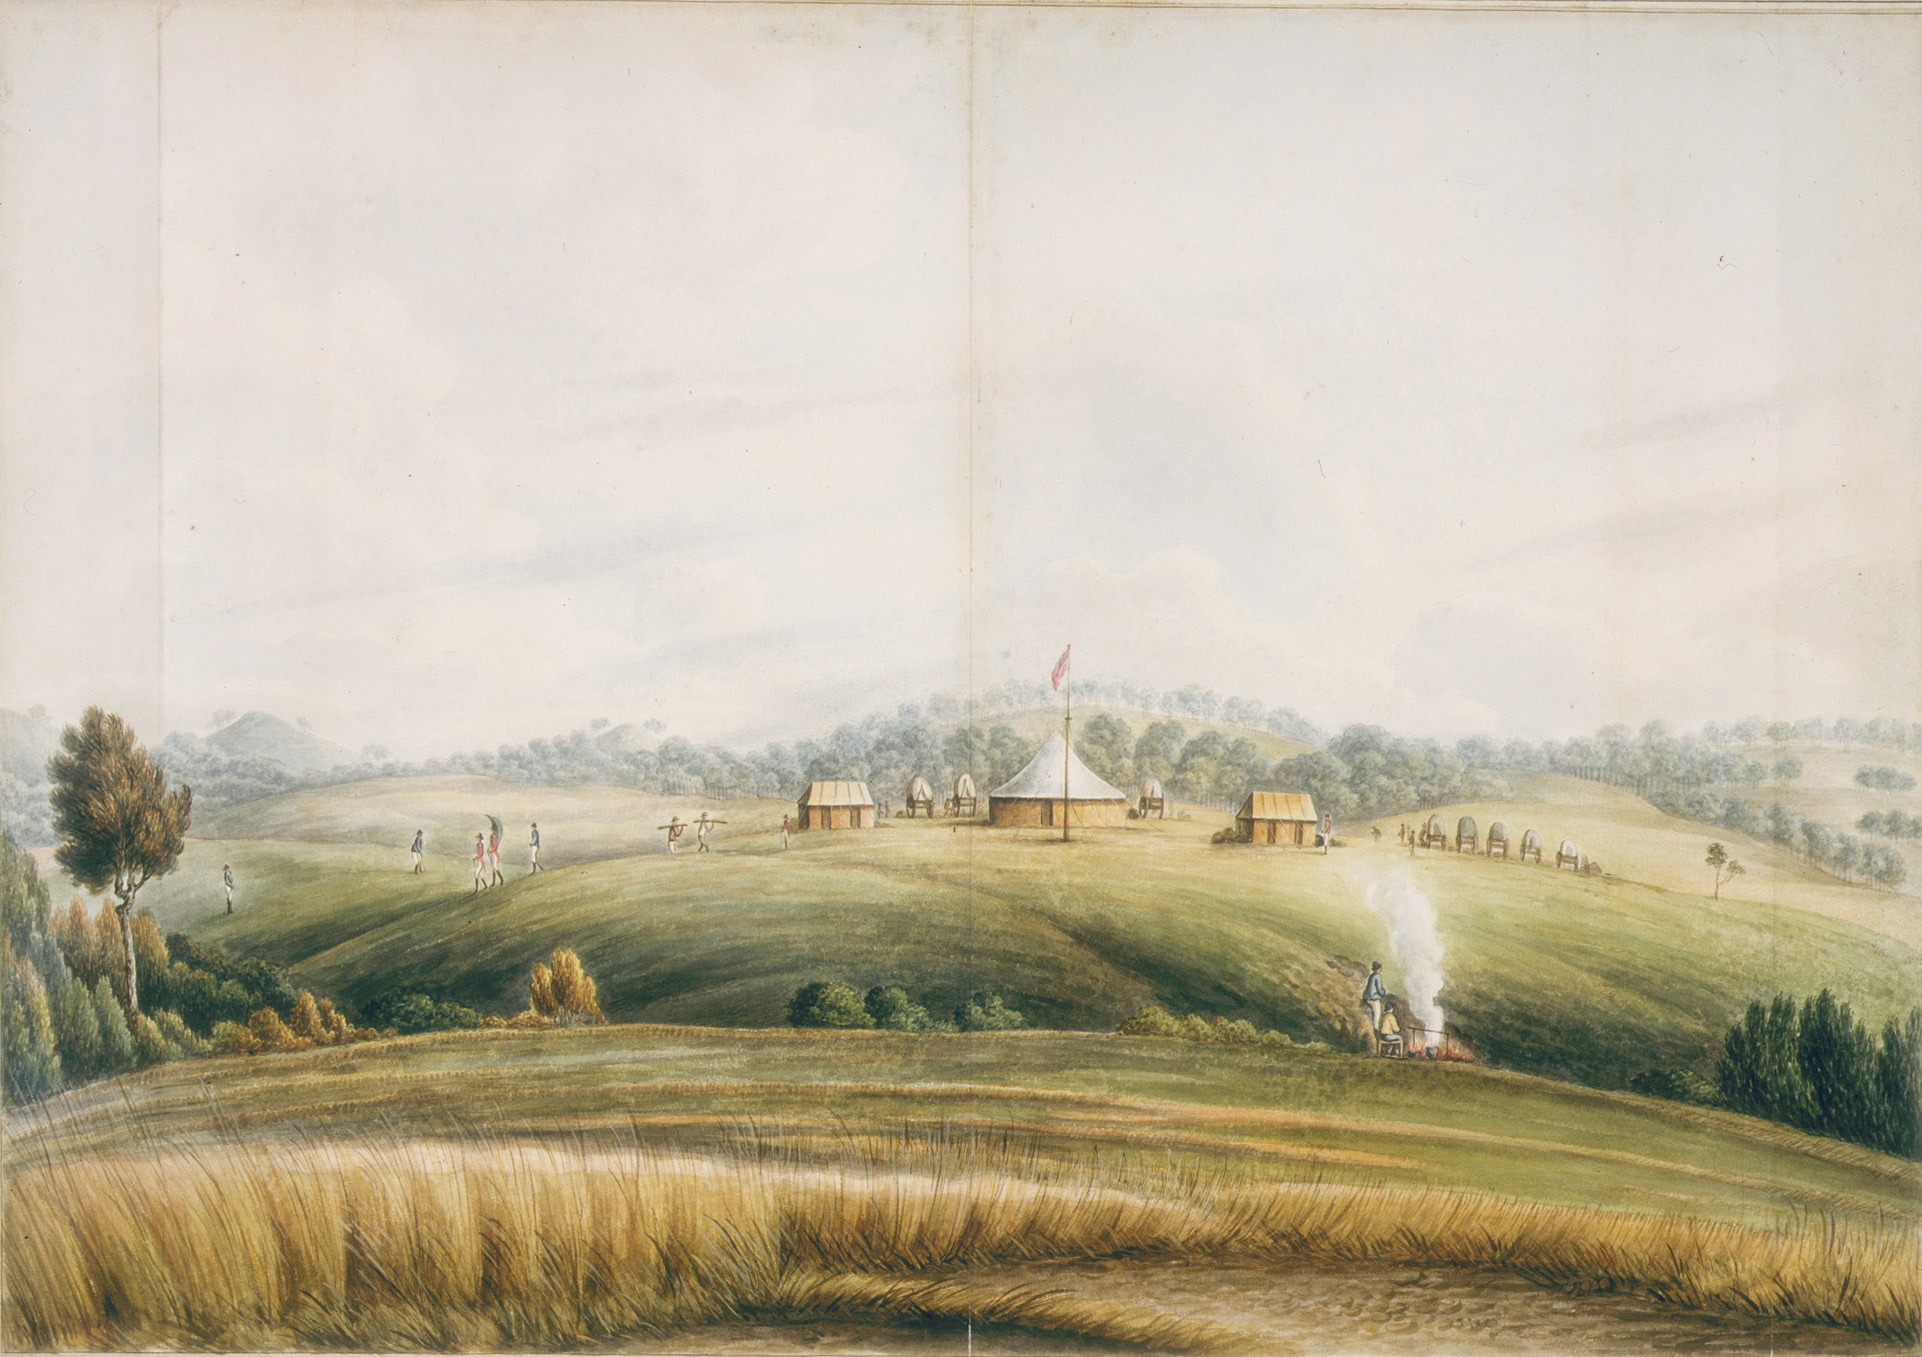 View across cultivated landscape with smoke and farm buildings in distance.